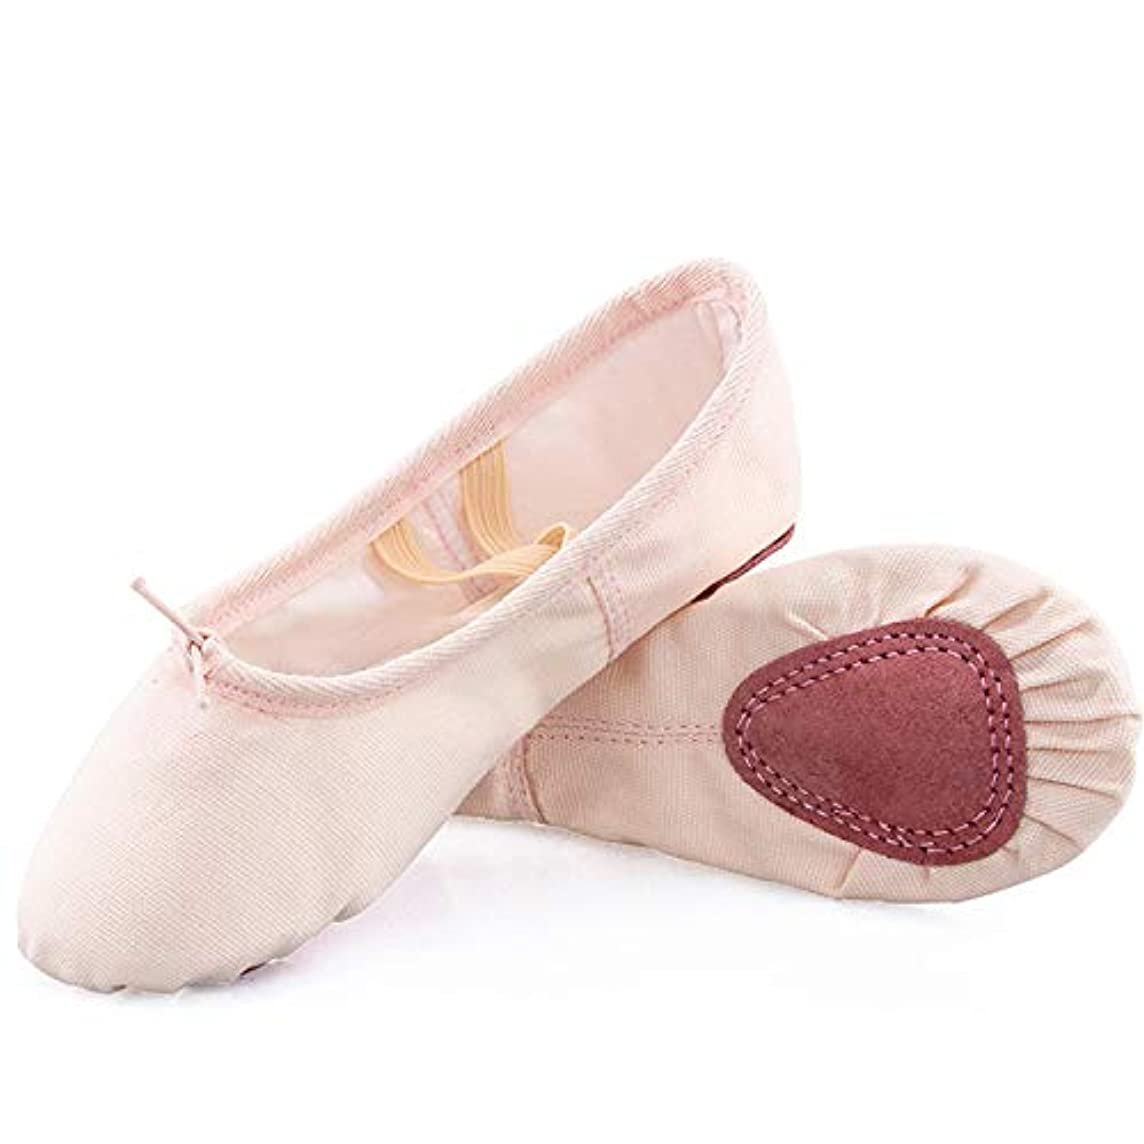 Koolen Ballet Shoes, Canvas Upper & Leather Sole Ballet Slippers, Ballet Dance Shoes for Girls (Toddler/Little Kid/Big Kid/Women)